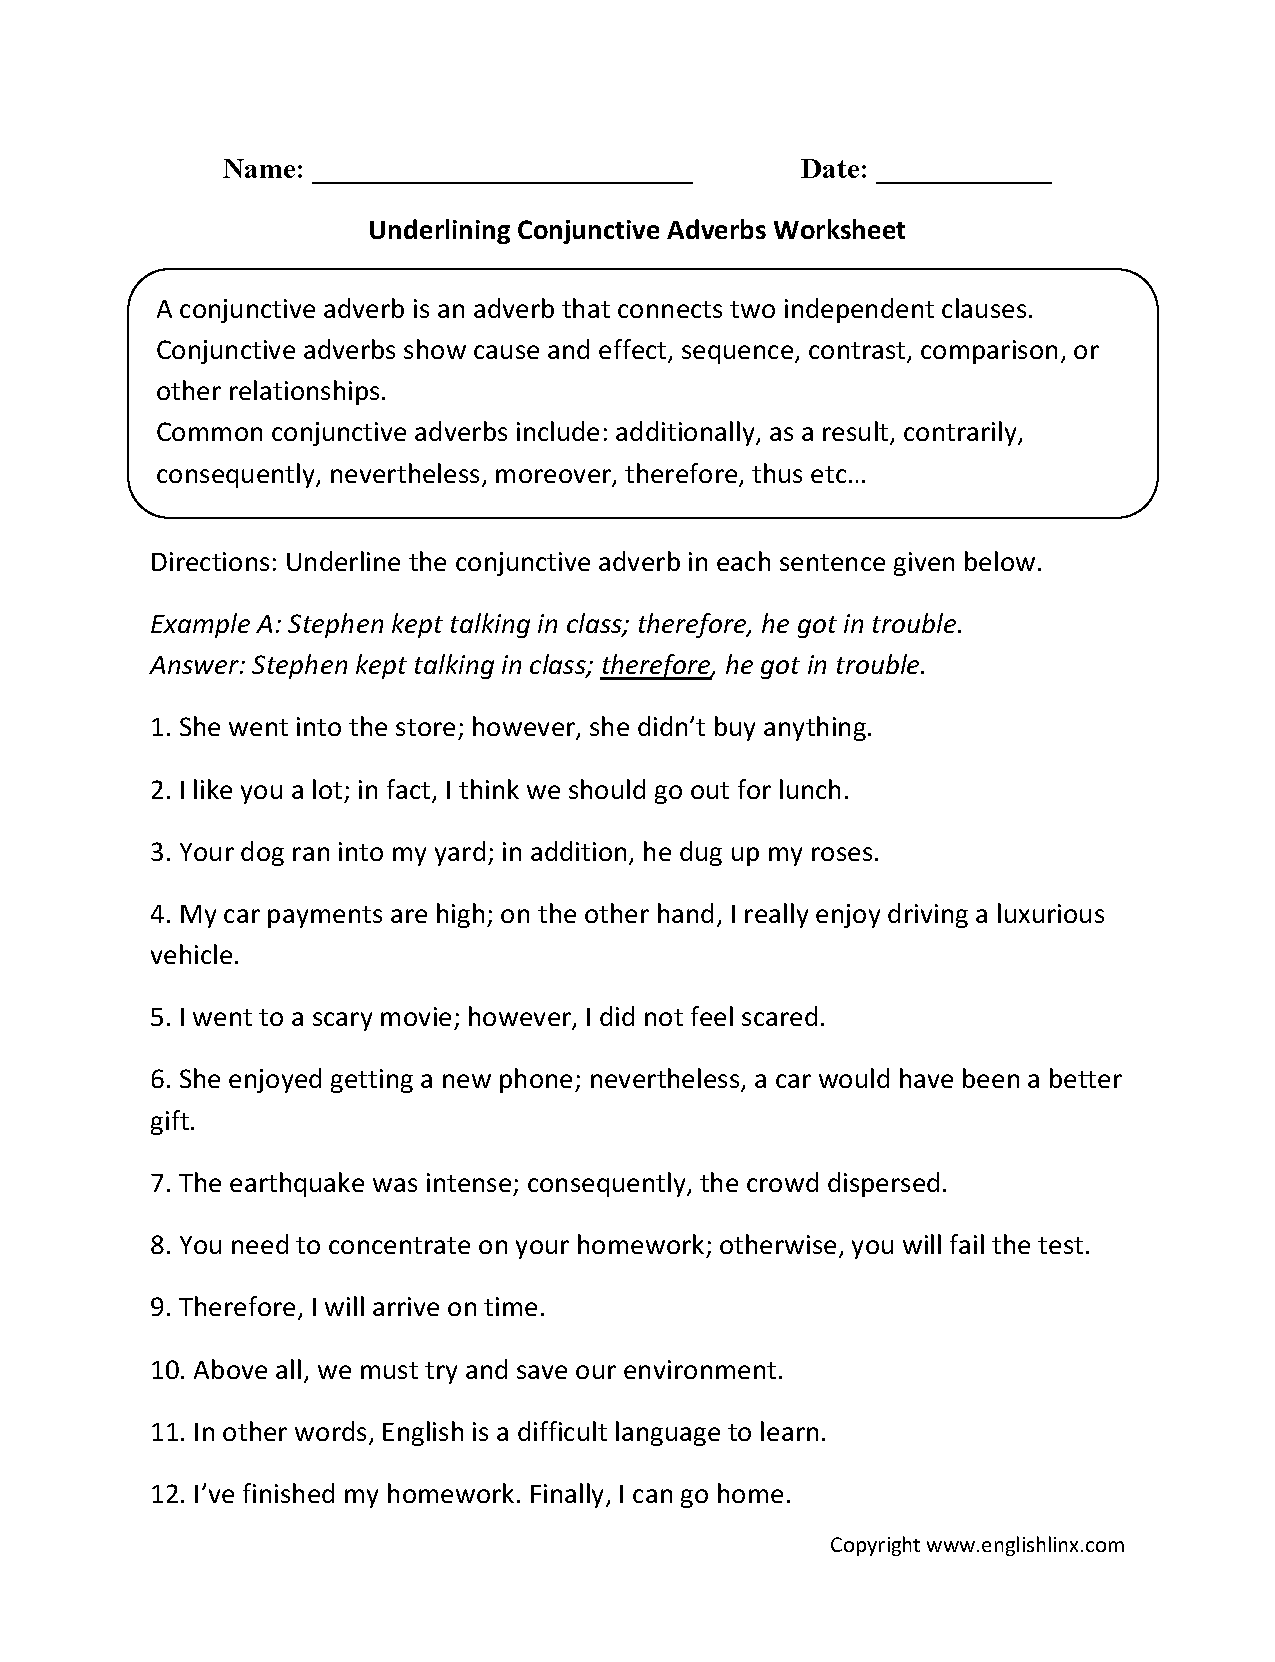 Aldiablosus  Unique Englishlinxcom  Conjunctions Worksheets With Lovable Worksheet With Alluring  Figure Grid Reference Worksheet Also Verb Past Tense Worksheet In Addition Free Printable Grammar Worksheets For Rd Grade And Abacus Worksheets For Kids As Well As Time Duration Worksheets Additionally Context Clues Worksheets For Grade  From Englishlinxcom With Aldiablosus  Lovable Englishlinxcom  Conjunctions Worksheets With Alluring Worksheet And Unique  Figure Grid Reference Worksheet Also Verb Past Tense Worksheet In Addition Free Printable Grammar Worksheets For Rd Grade From Englishlinxcom